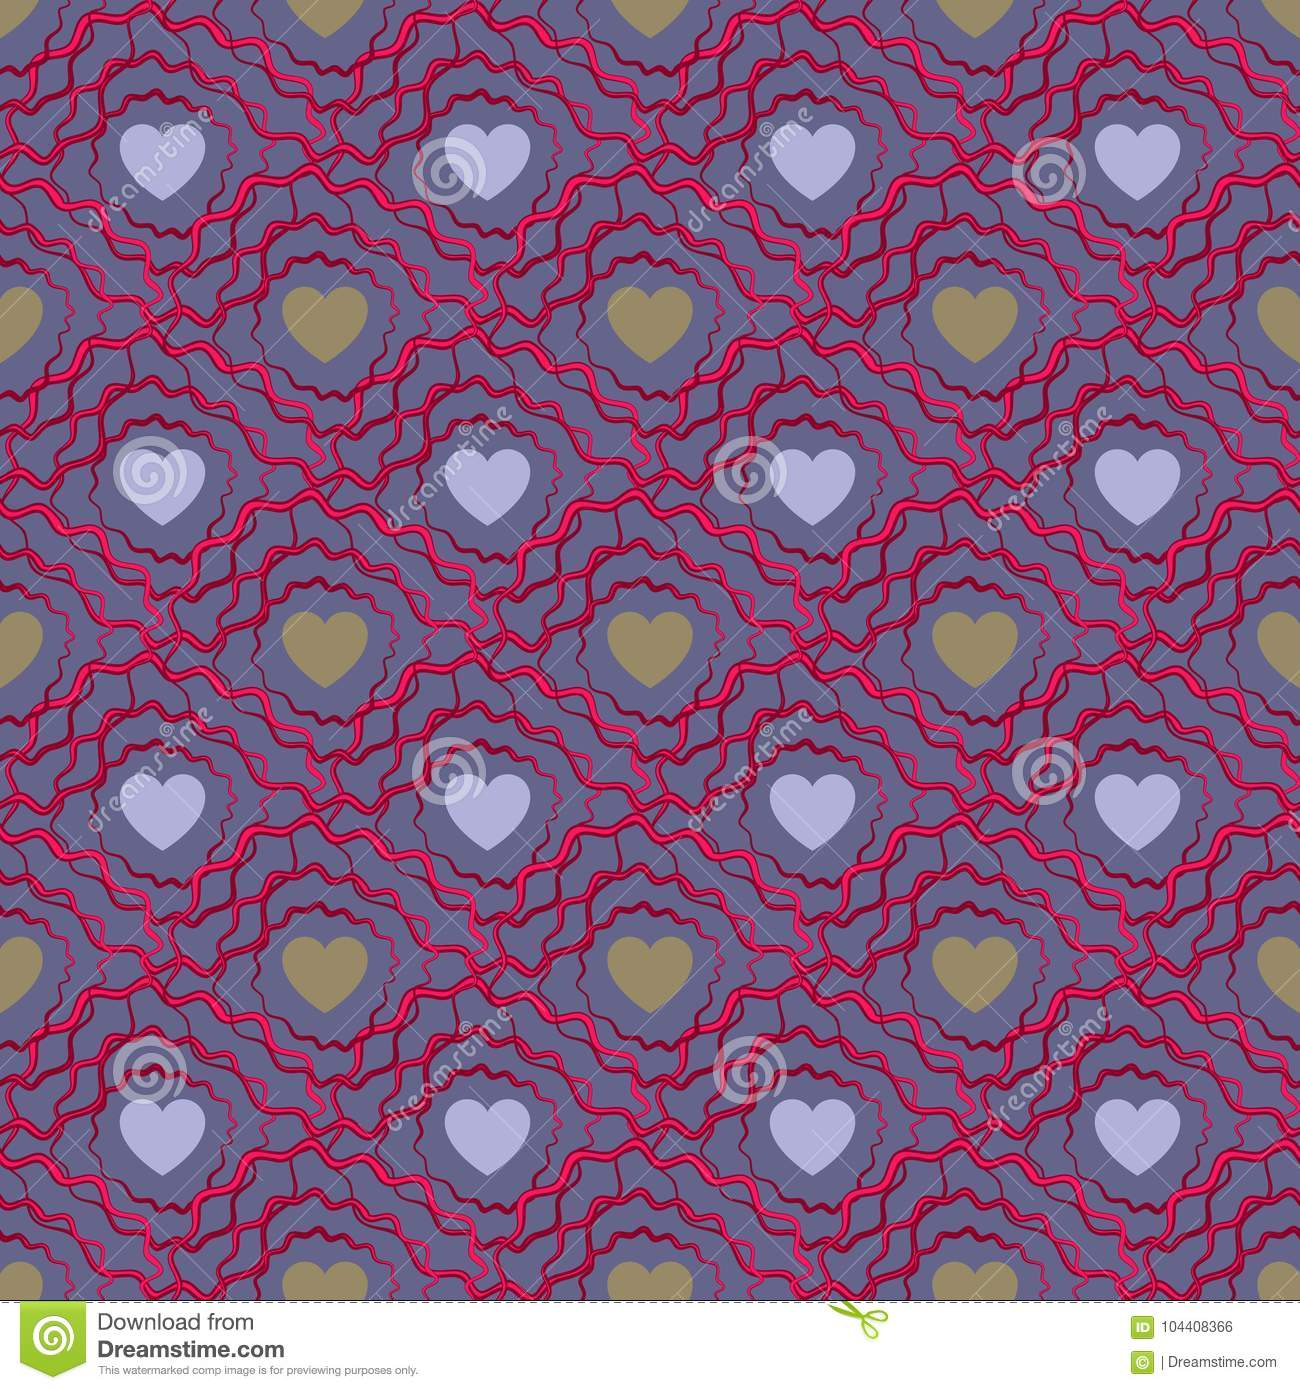 Abstract seamless pattern with hearts. Valetines day or girlish